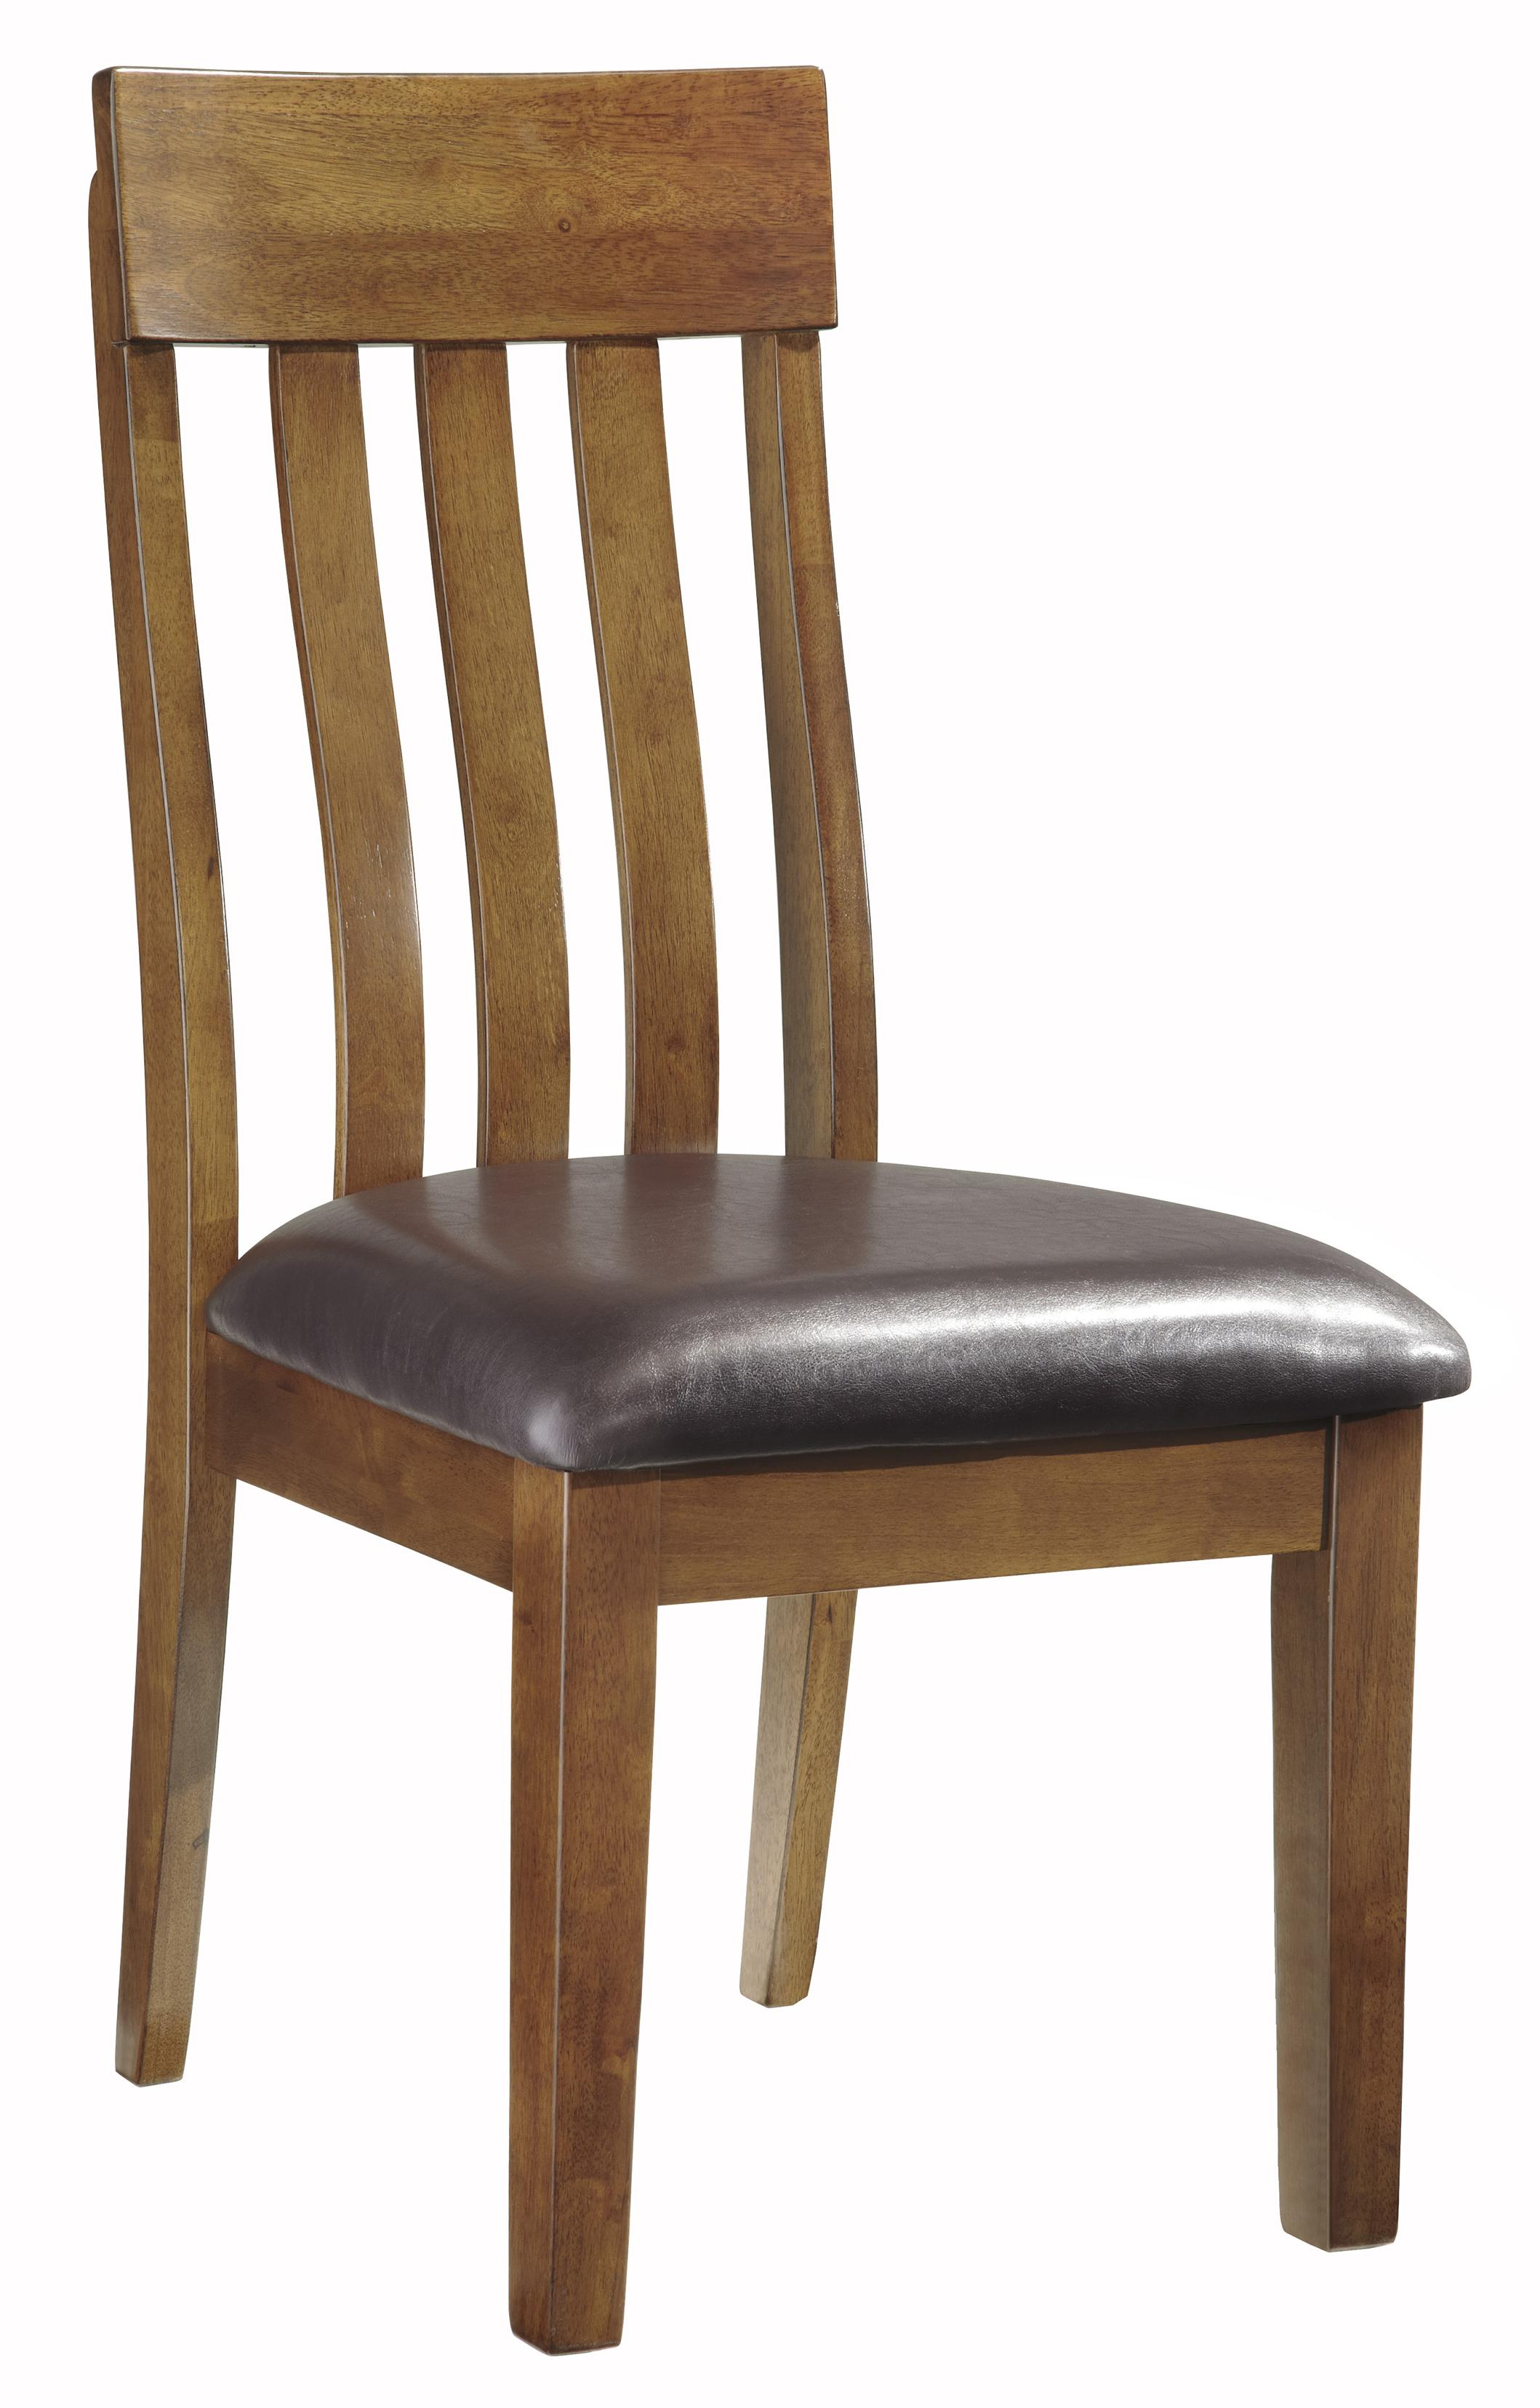 Ralene Upholstered Dining Side Chair  by Signature Design by Ashley at VanDrie Home Furnishings